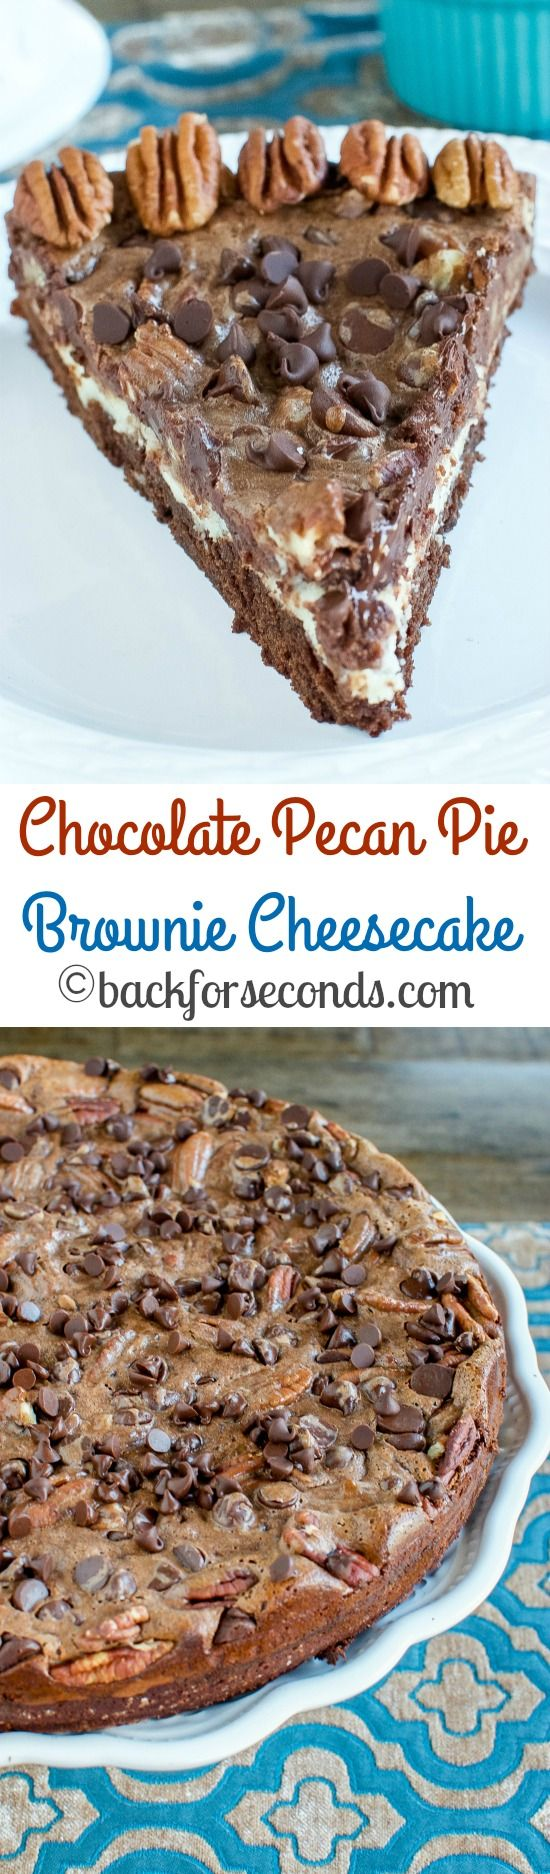 Easy Chocolate Pecan Pie Brownie Cheesecake